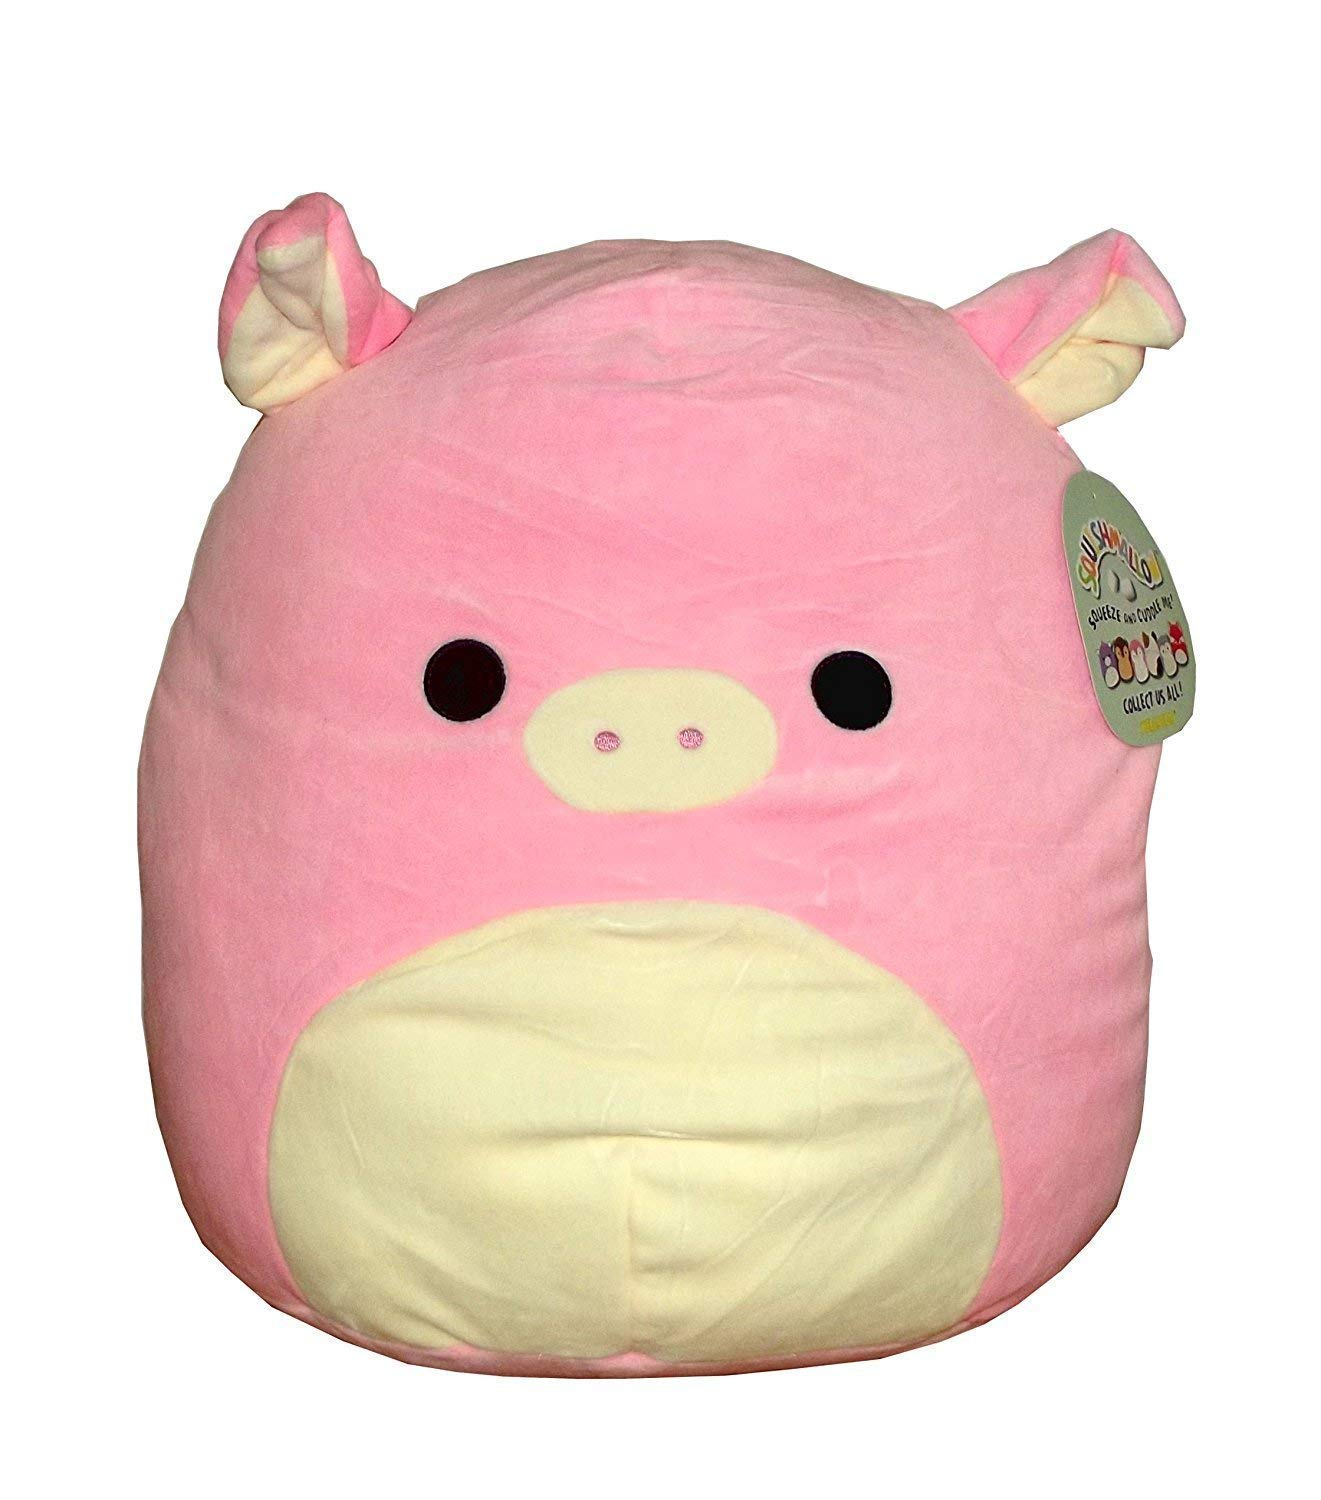 Squishmallow Kellytoy 12'' Peter The Pig- Super Soft Plush Toy Pillow Pet Animal Pillow Pal Buddy Stuffed Animal Birthday Gift Holiday Easter